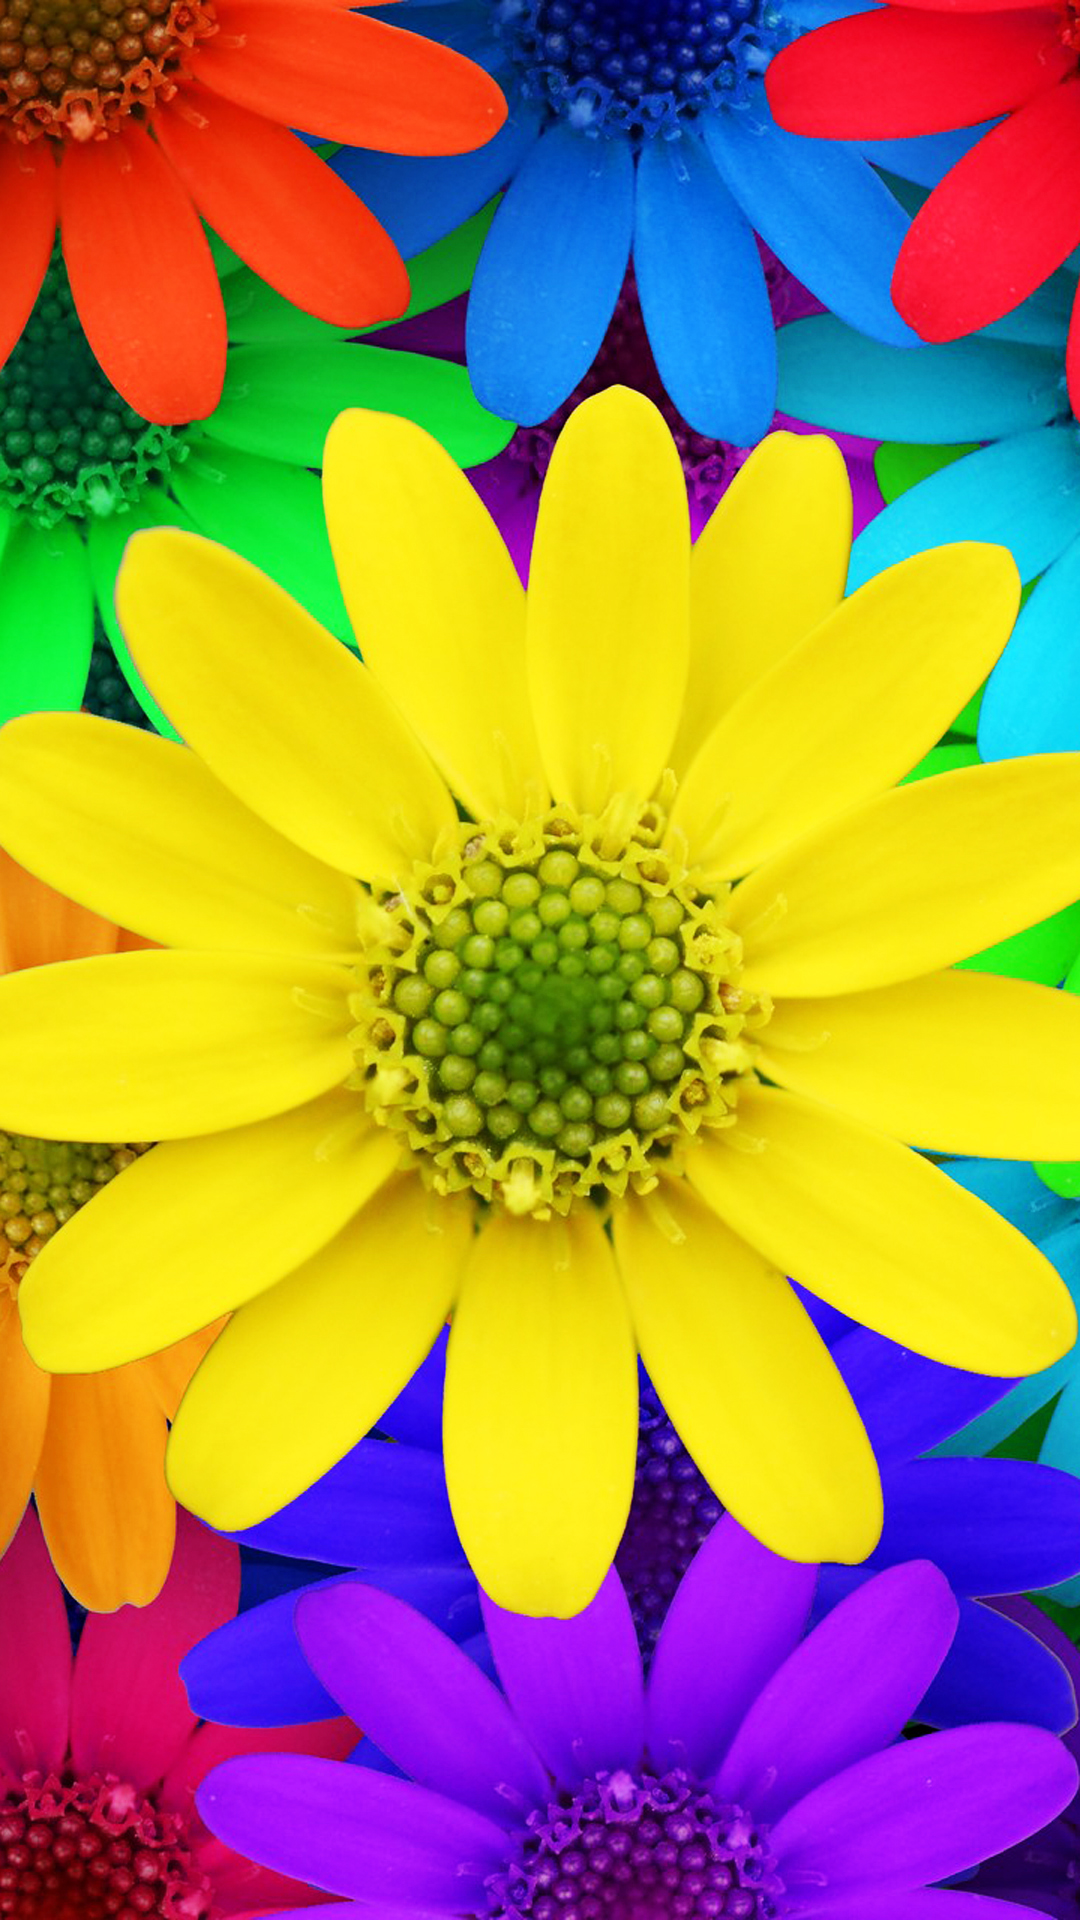 colorful-daisy-flowers-spring-red-yellow-blue-purple-image-1080×1920-wallpaper-wp3604207